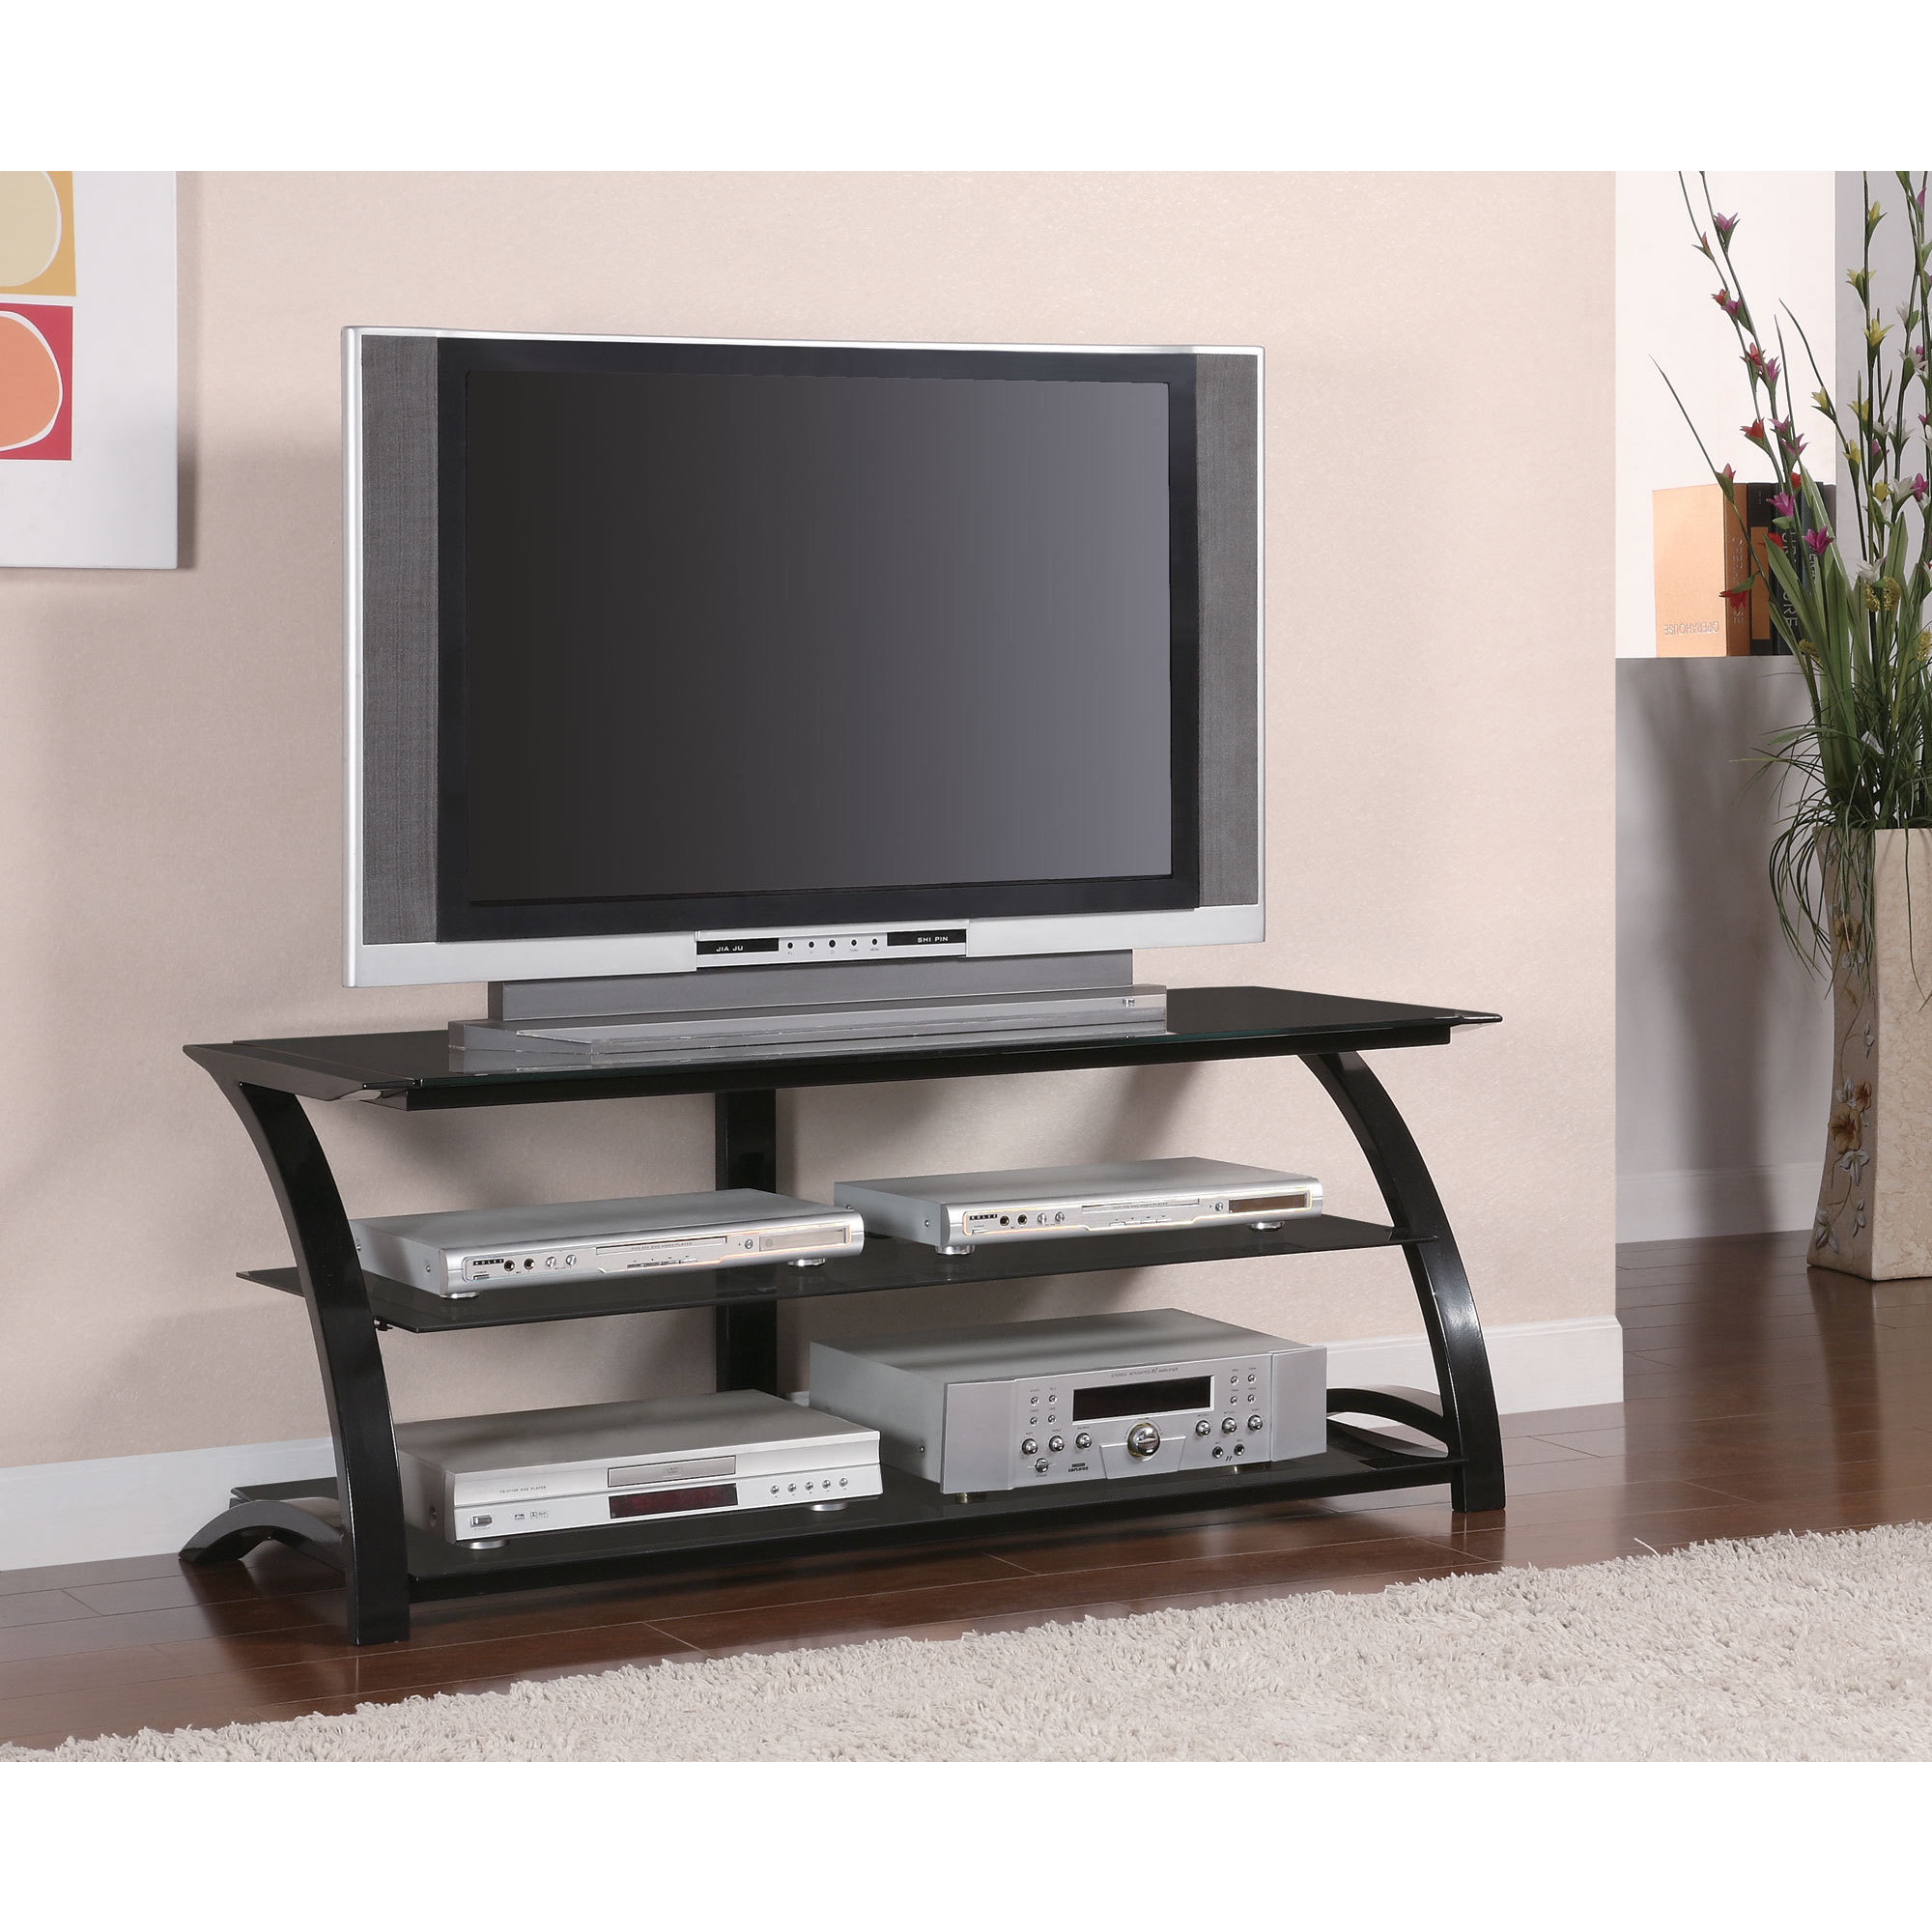 Shop Coaster Company Black Metal Tempered Glass Tv Stand Free